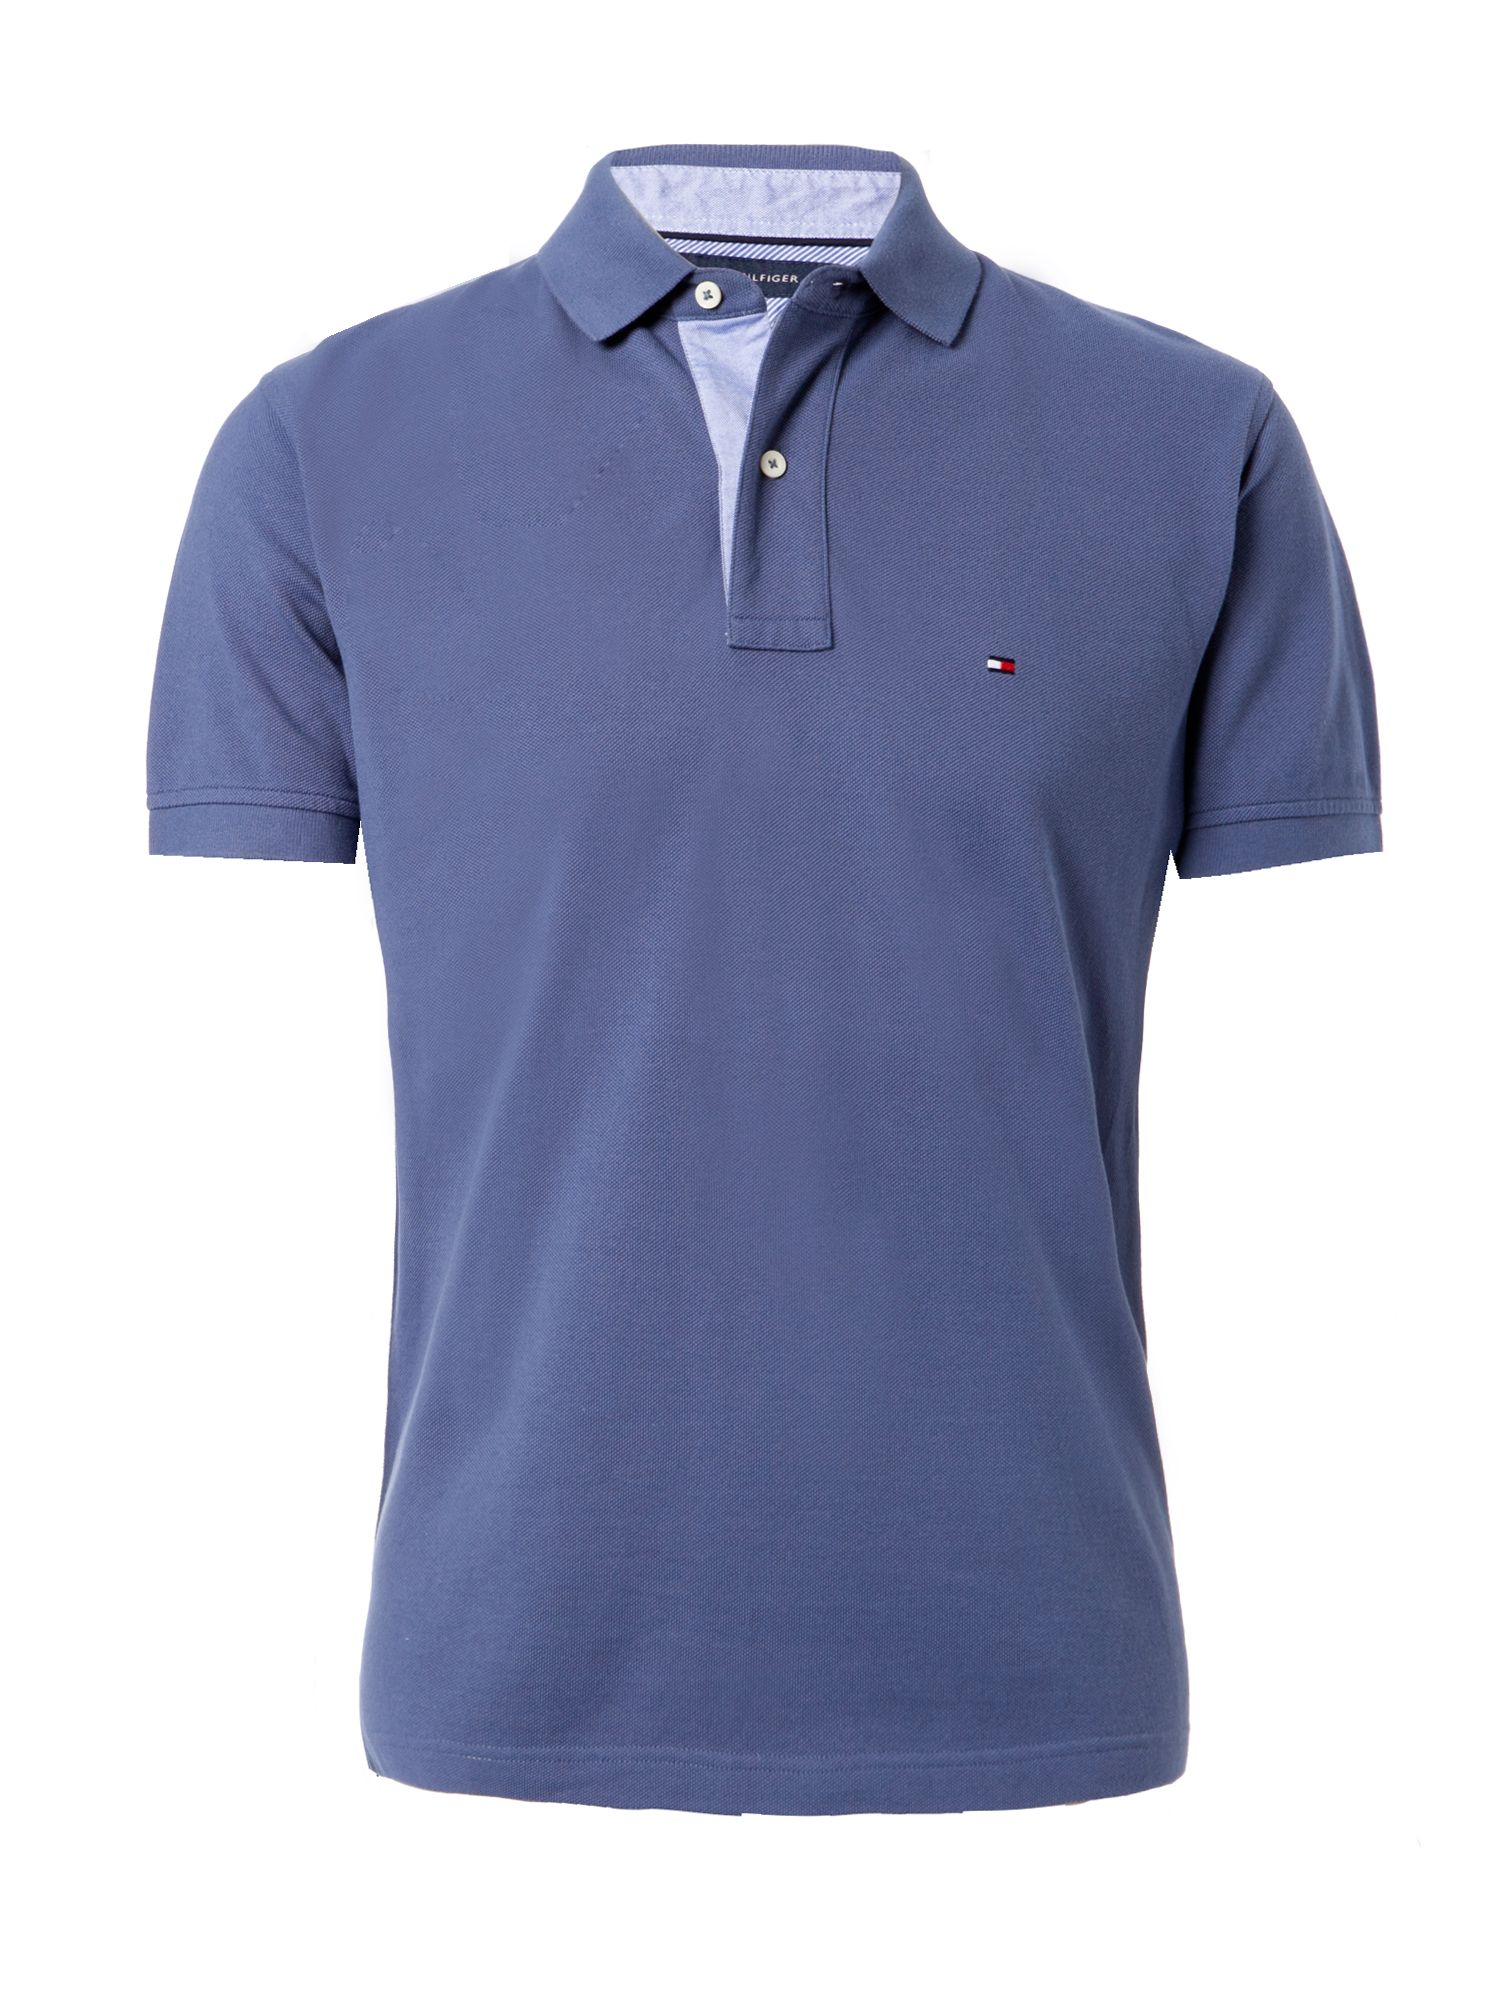 tommy hilfiger classic tommy polo shirt in blue for men indigo lyst. Black Bedroom Furniture Sets. Home Design Ideas